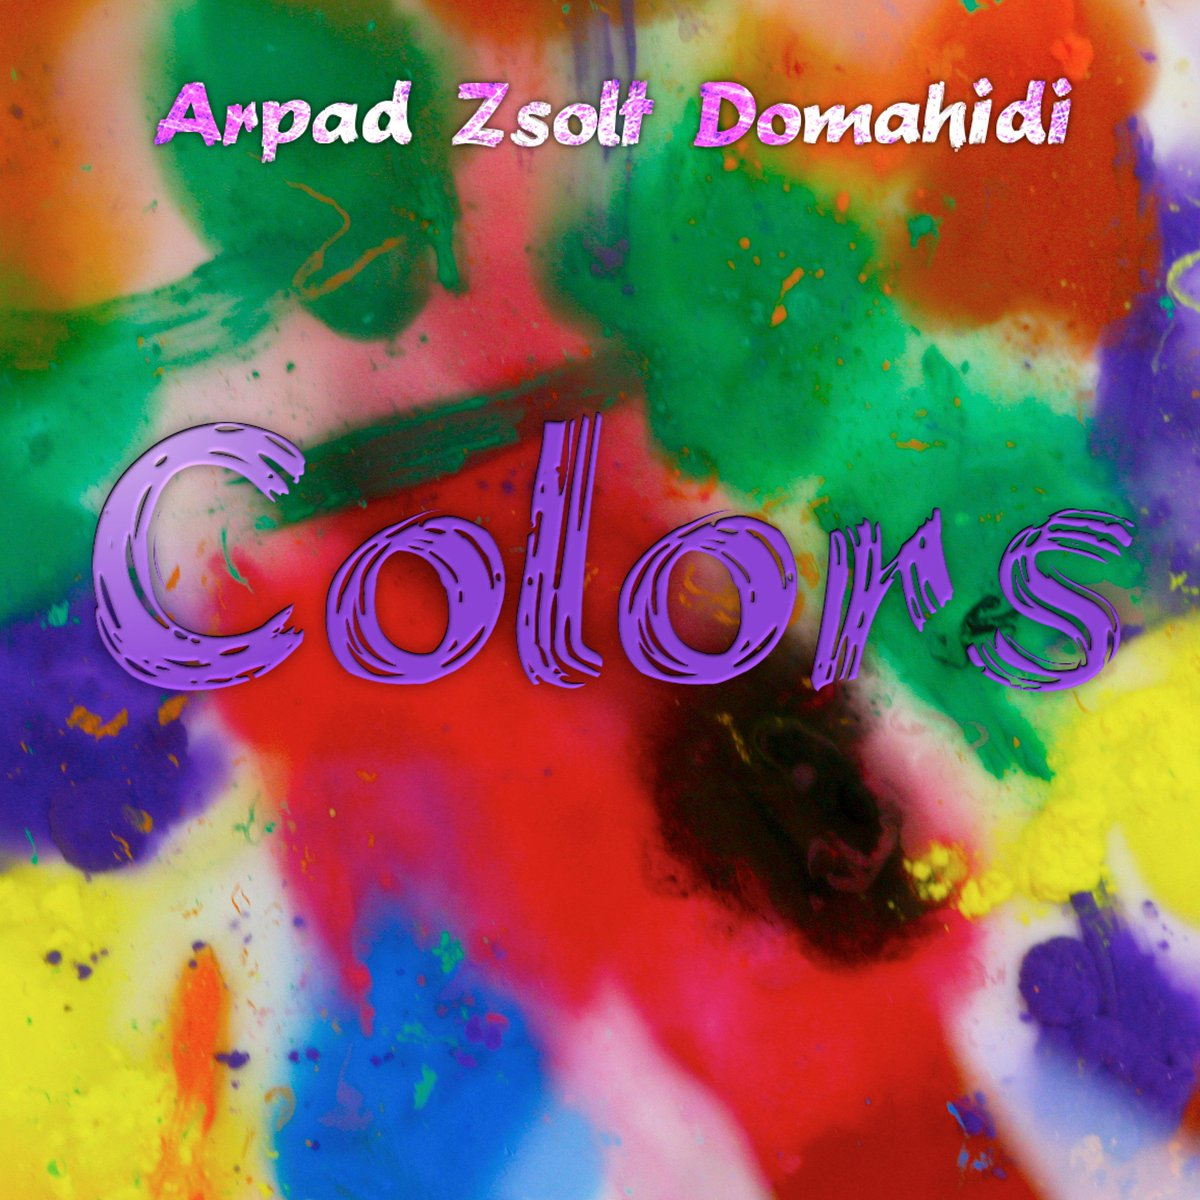 #dancemusic #EDM #housemusic  &quot;Colors&quot; EP is available for #Advertising #comercial usage @AudioSparx -  https://www. audiosparx.com/sa/archive/Pop /Pop-EDM/Colors/863161 &nbsp; … <br>http://pic.twitter.com/U7IC14xUOc